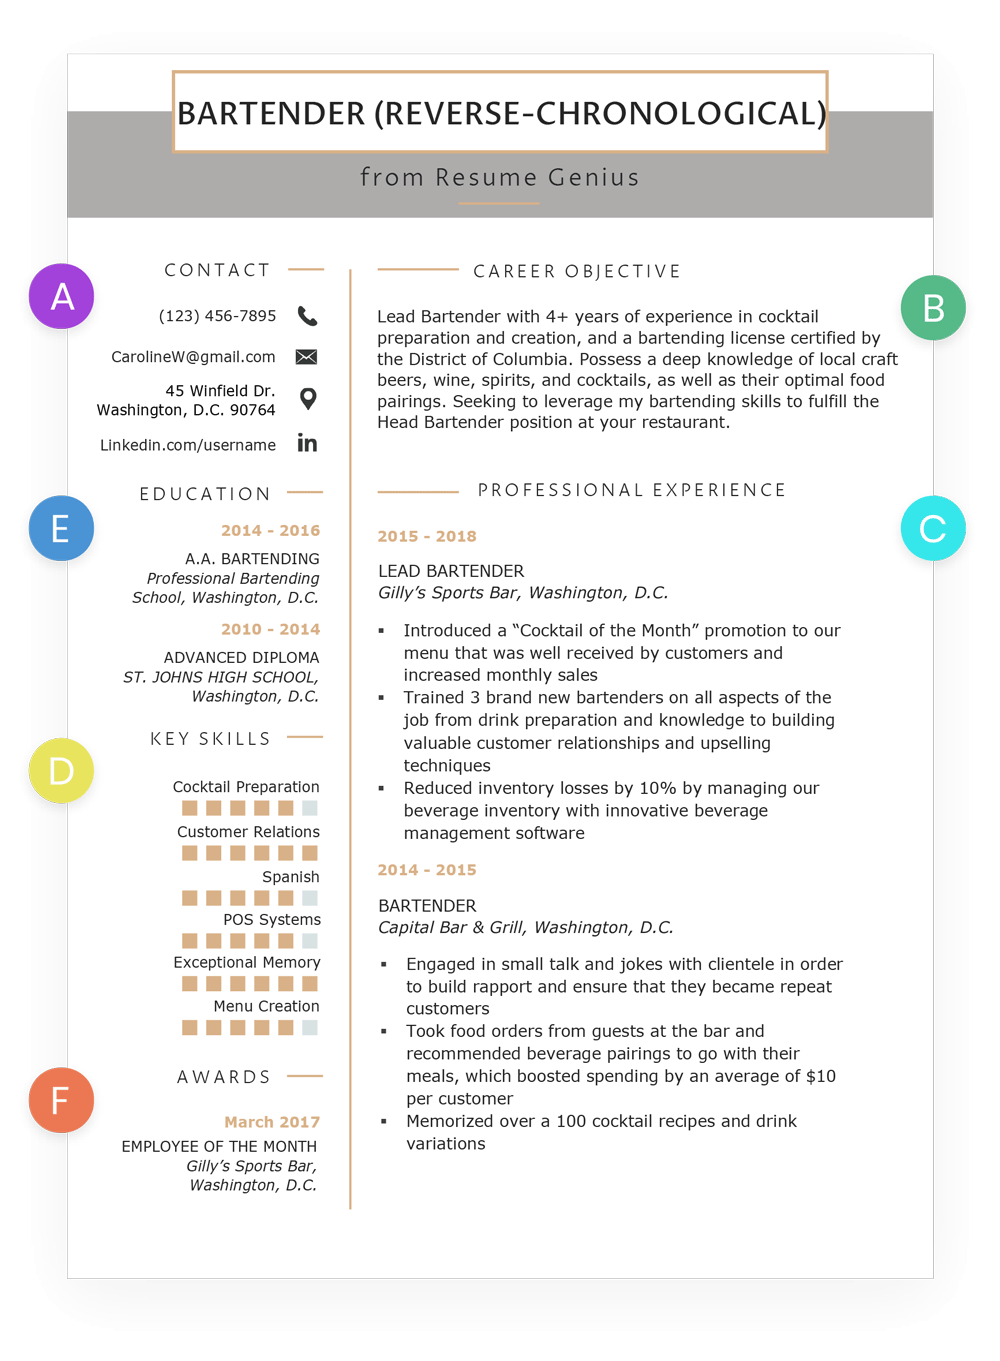 Standard Resume Format Template Chronological Resume Samples Writing Guide Rg